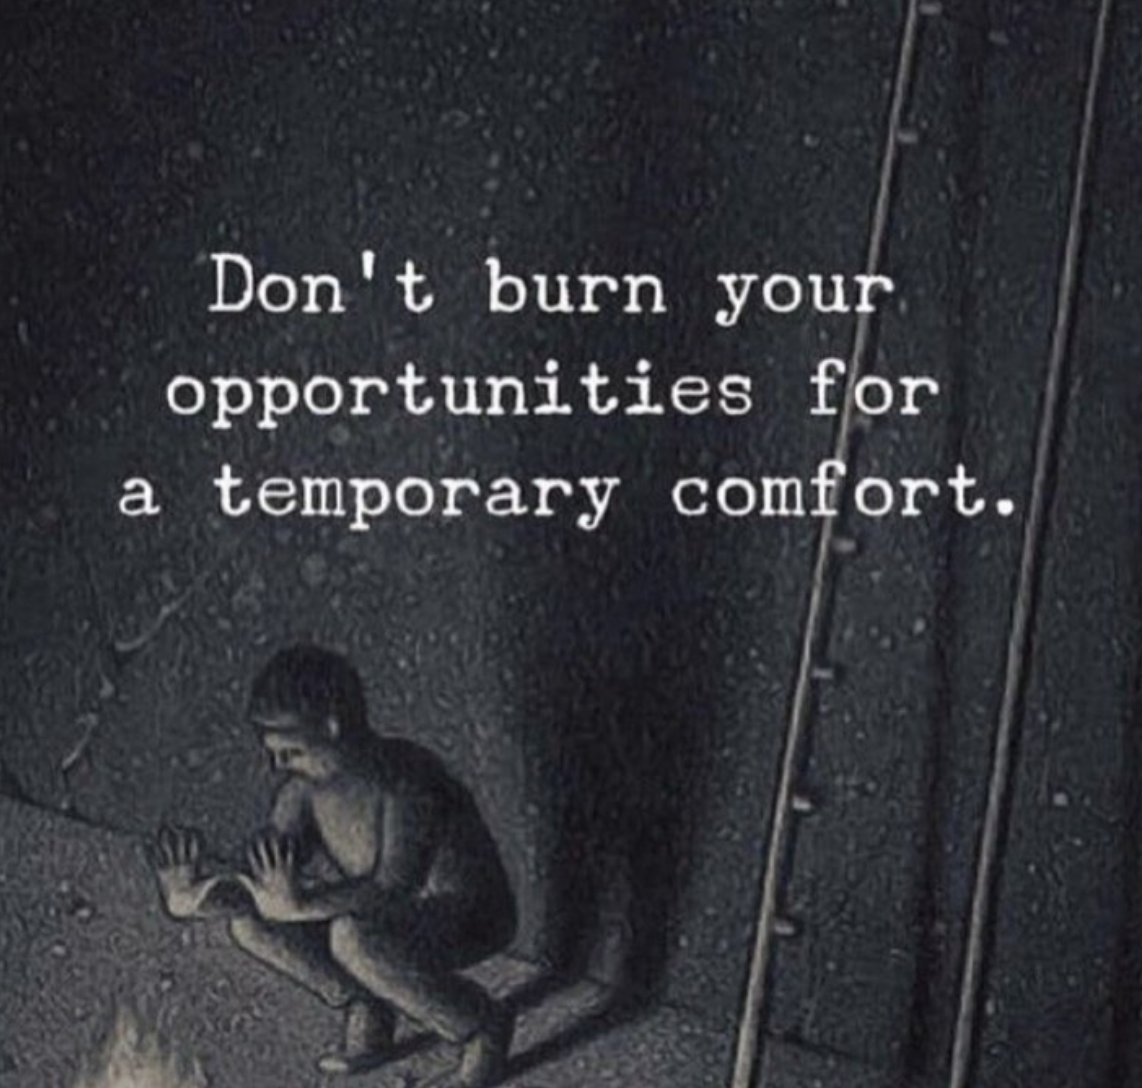 [Image] Don't burn your opportunities for temporary comfort.